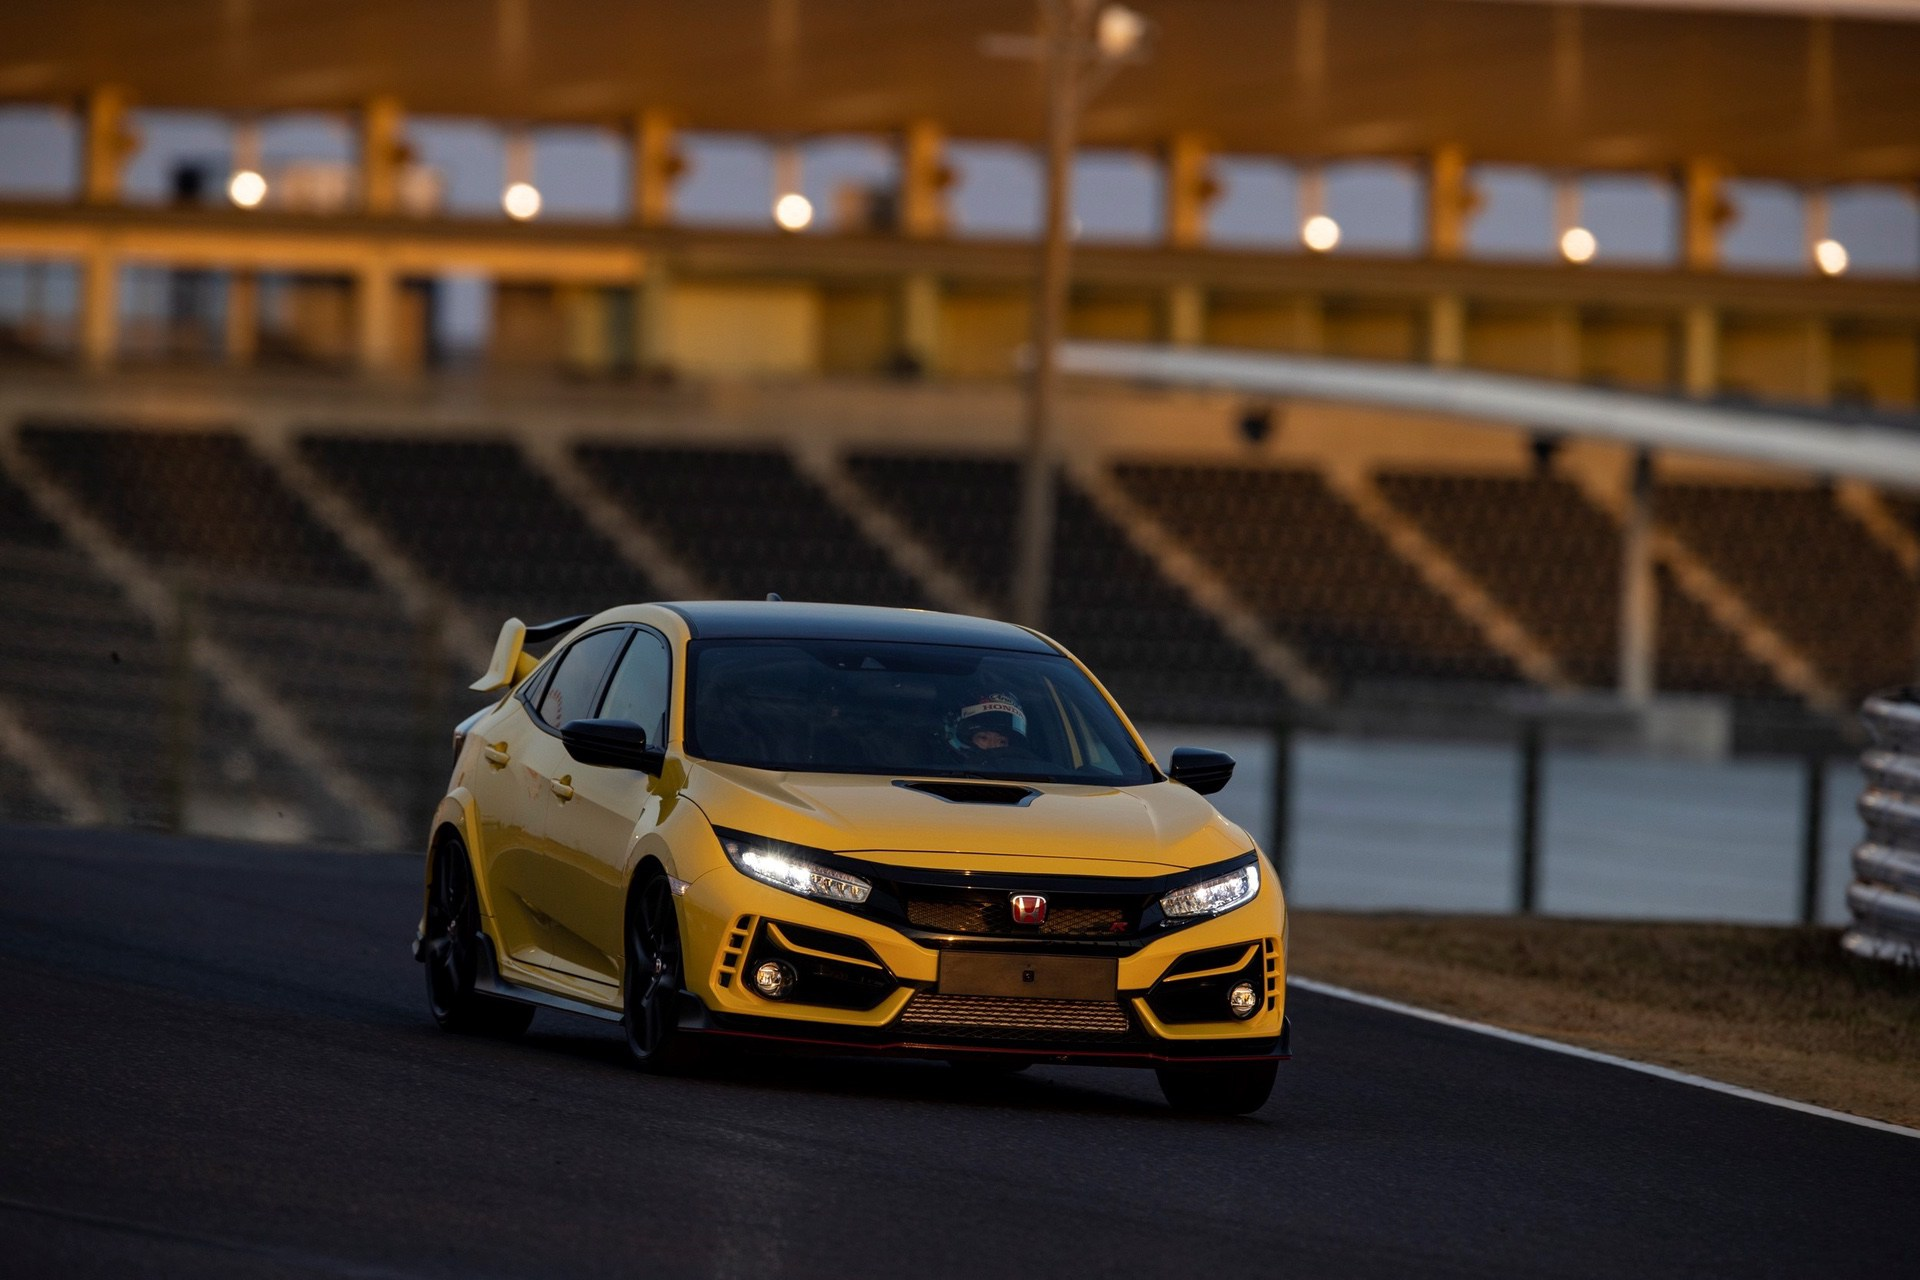 Honda Civic Type R Limited Edition Suzuka Circuit